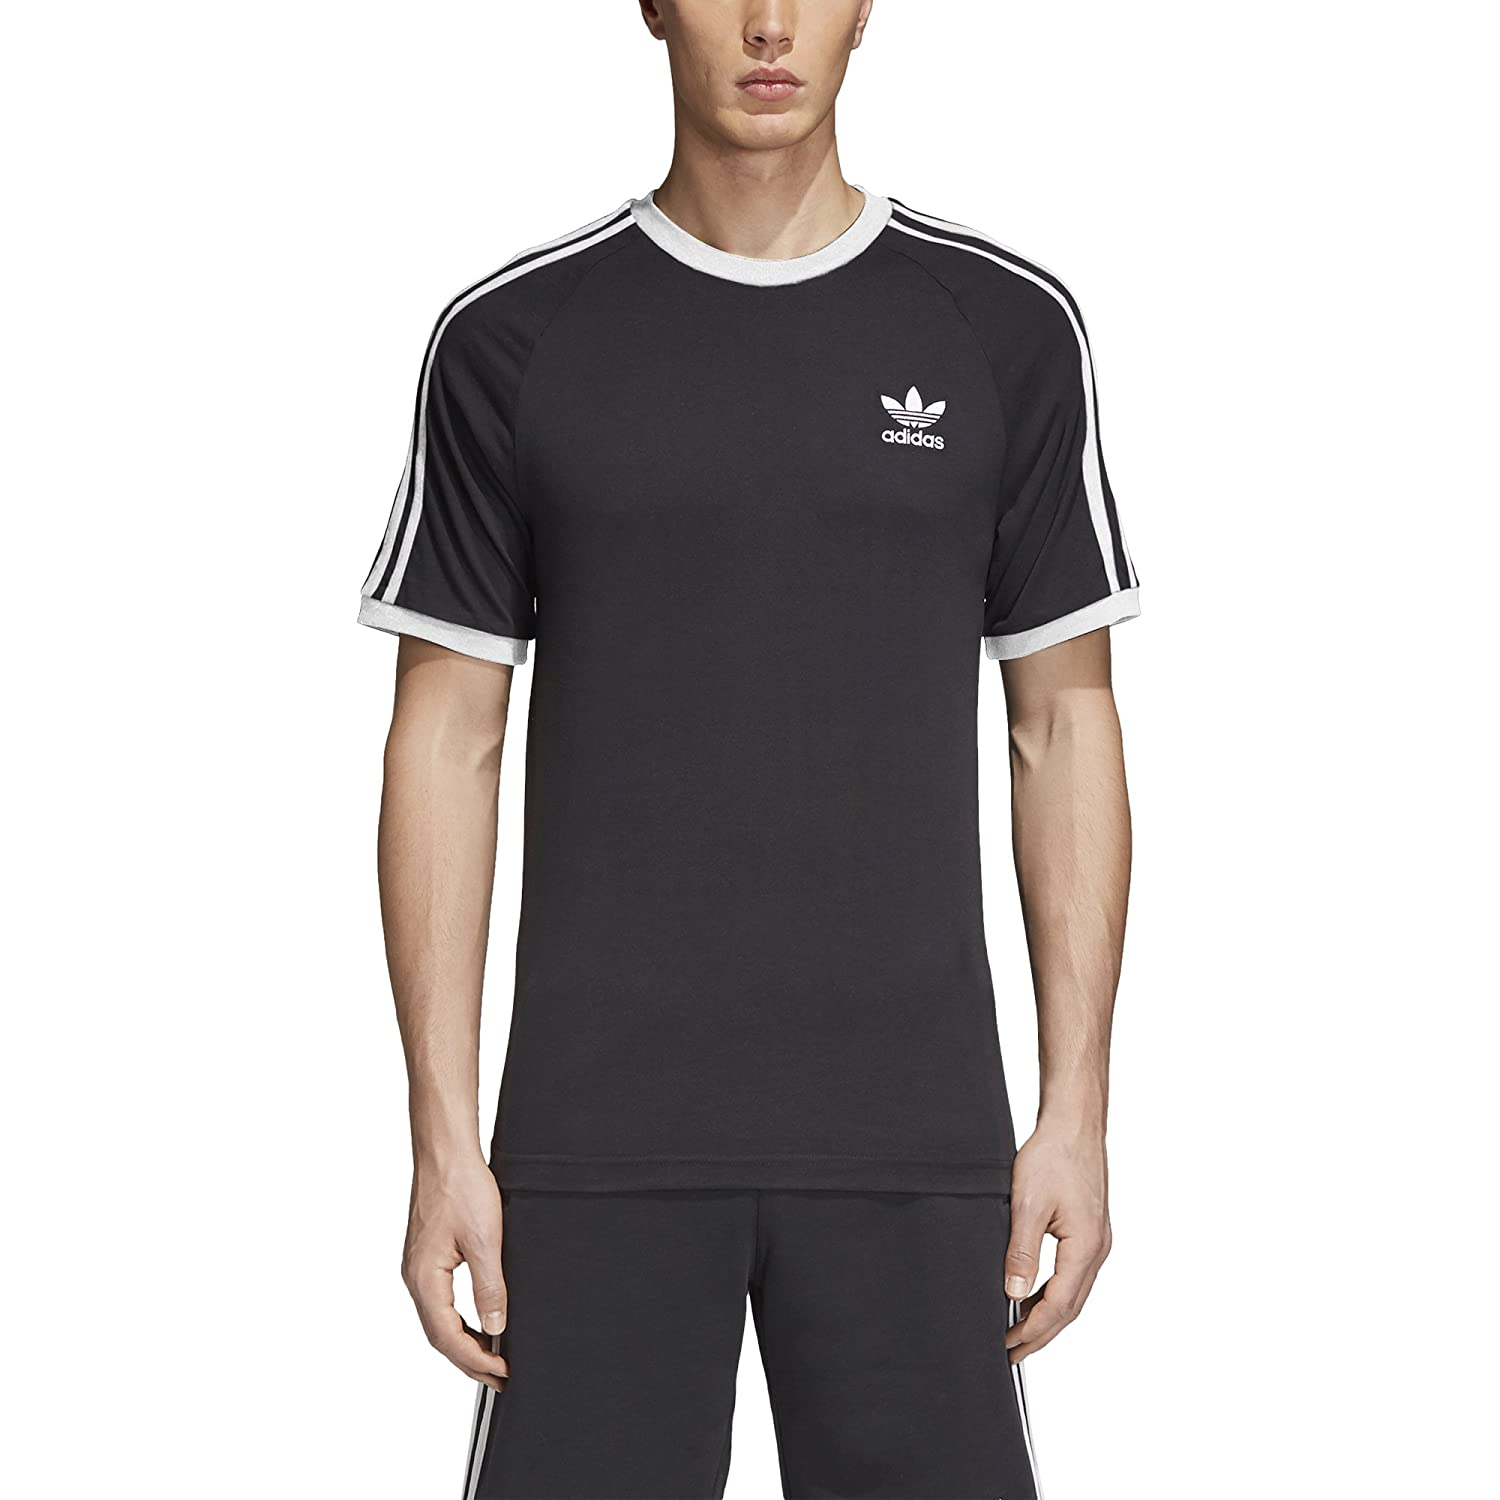 8efff25c adidas Originals Men's 3-Stripes Tee at Amazon Men's Clothing store: